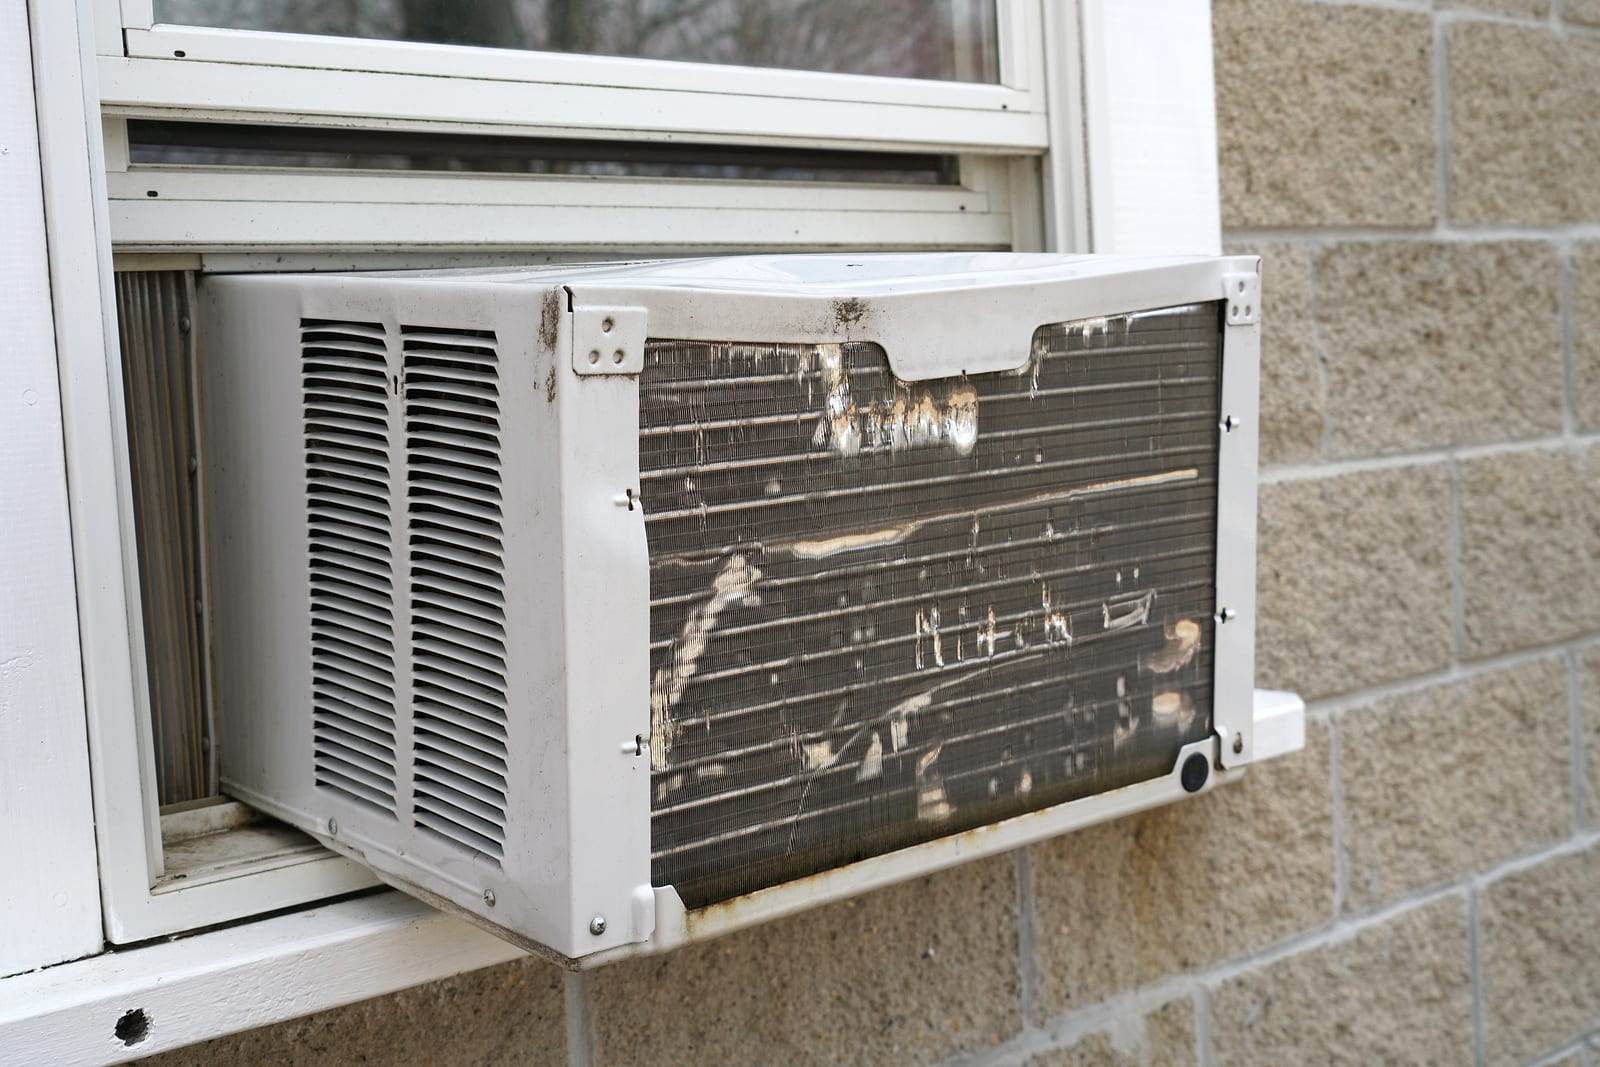 Old air conditioner installed on the window